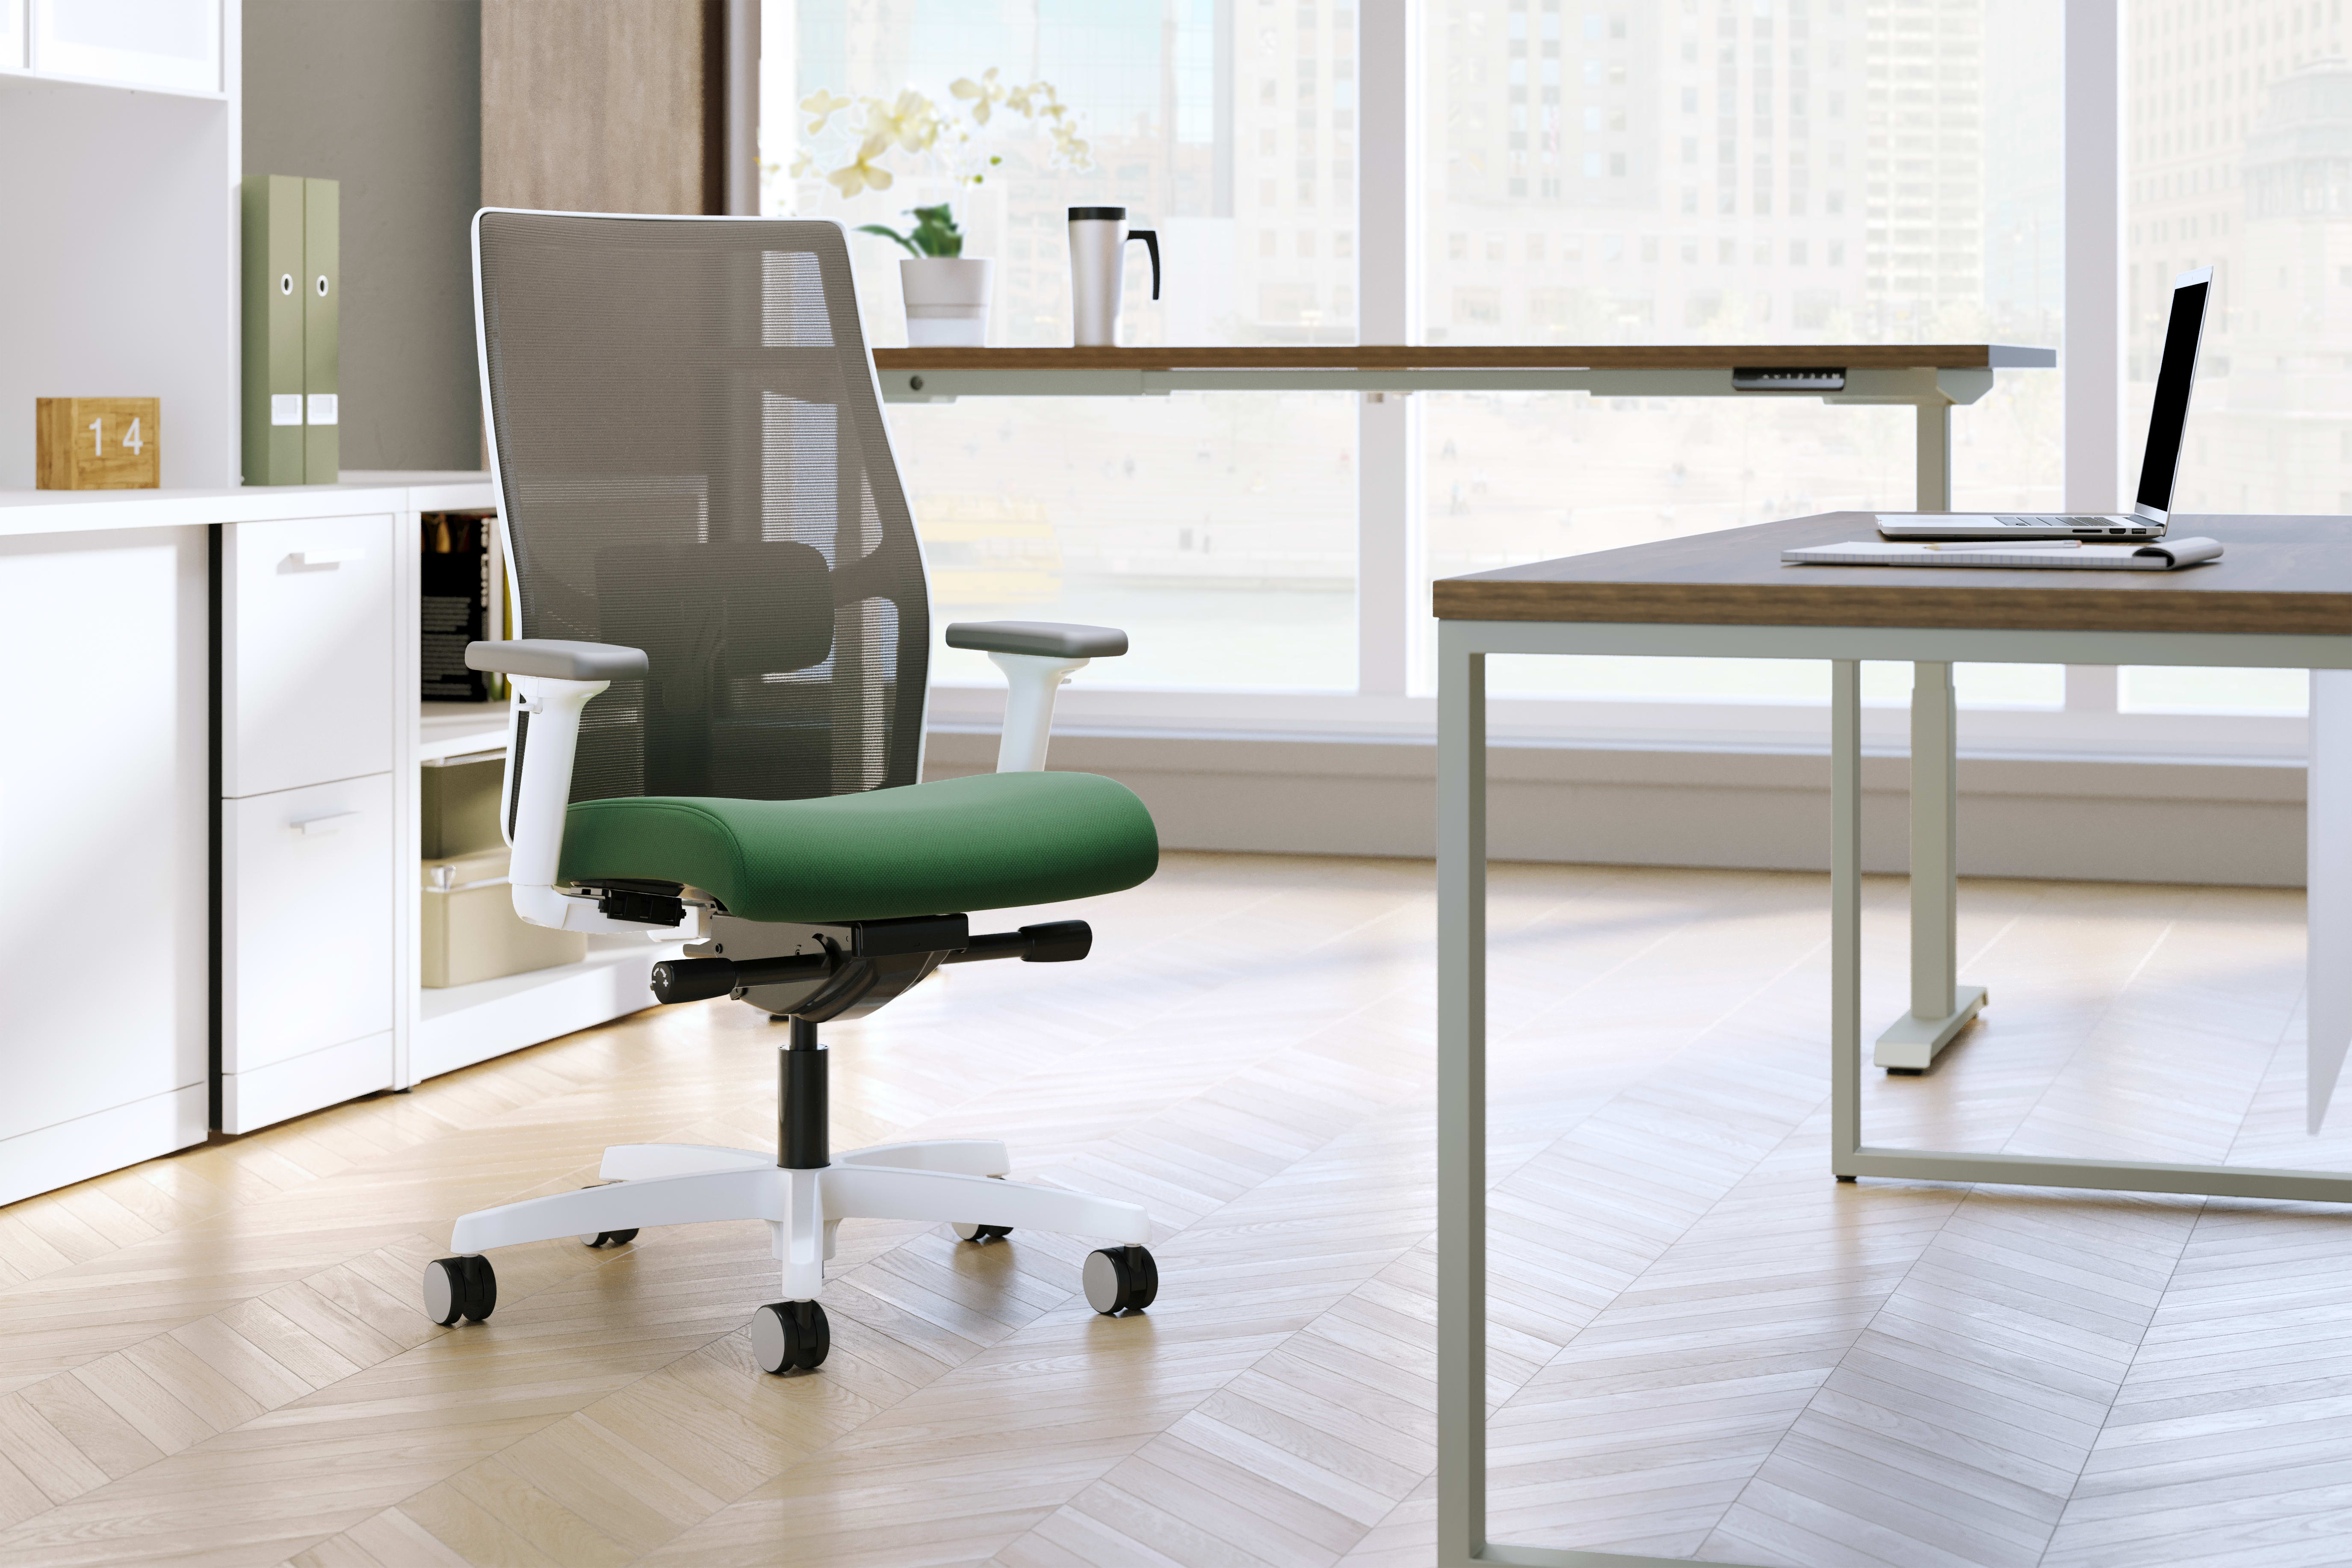 Ignition mesh-back chair with white frame and green fabric seat in an office setting.